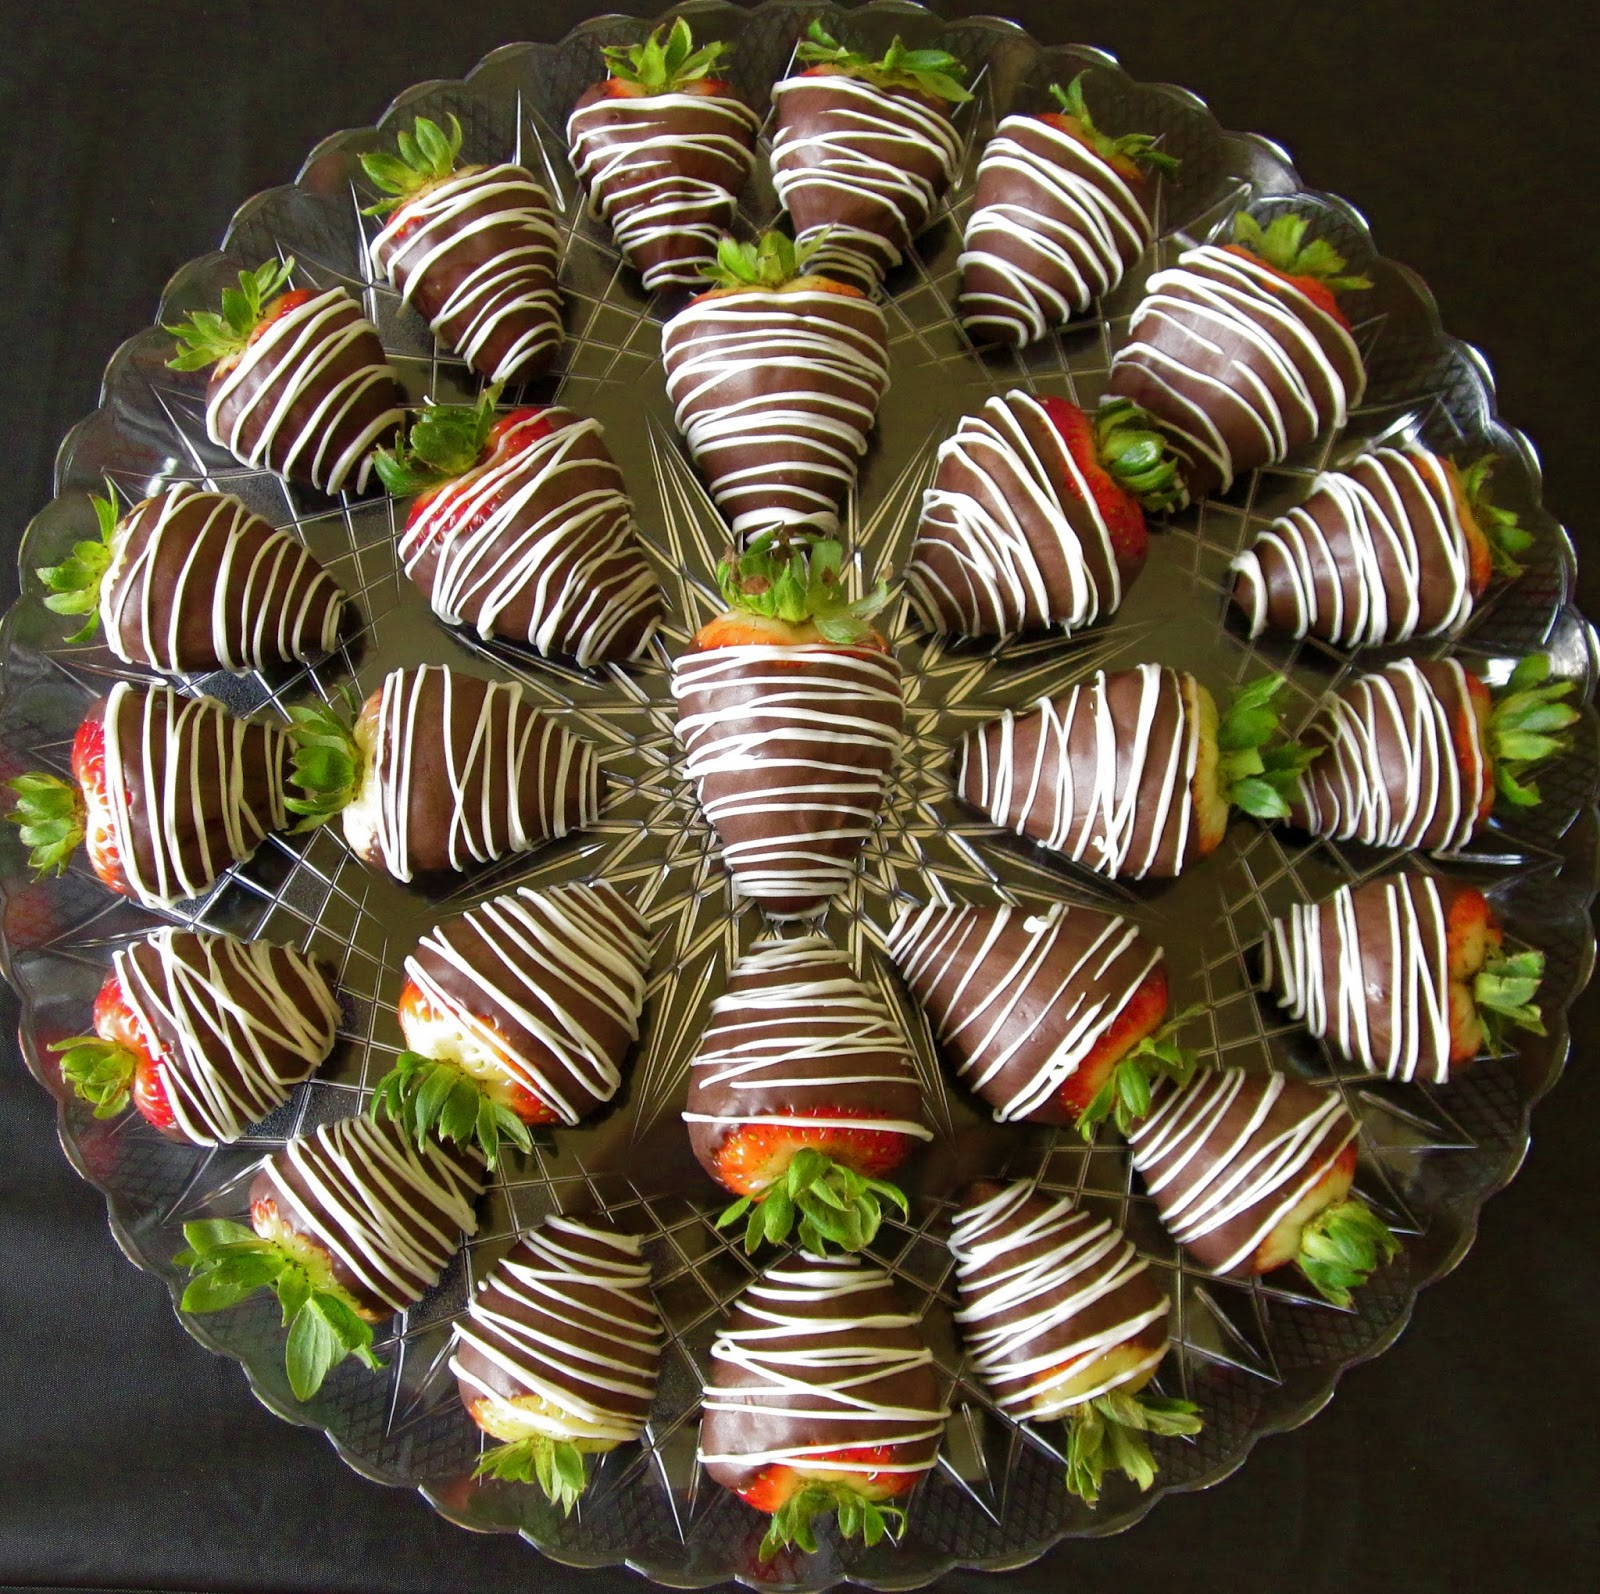 Video How To Make Beautiful Professional Looking Gourmet Chocolate Covered Strawberries The Lindsay Ann